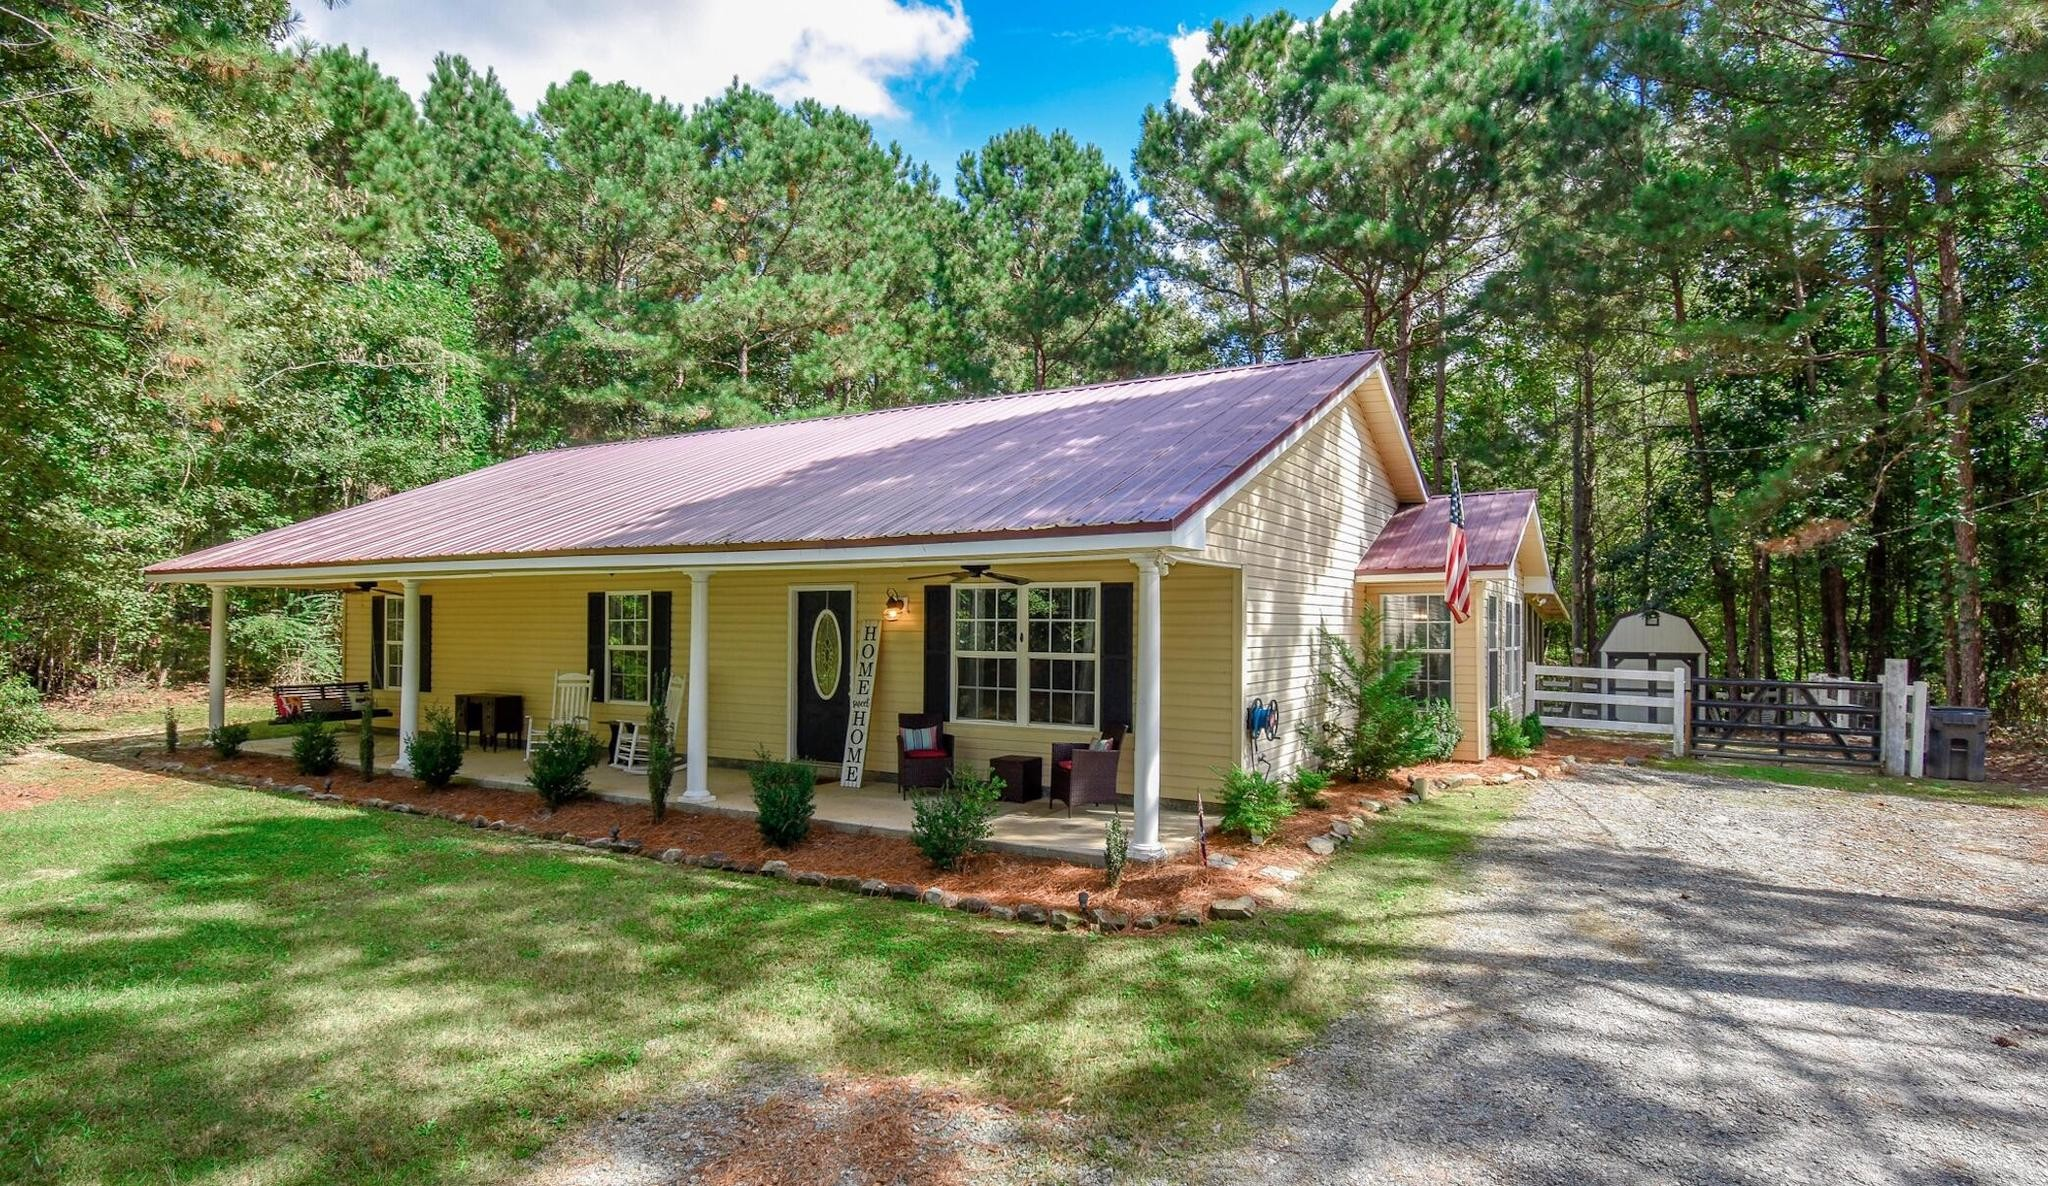 3-Bedroom House In Dadeville